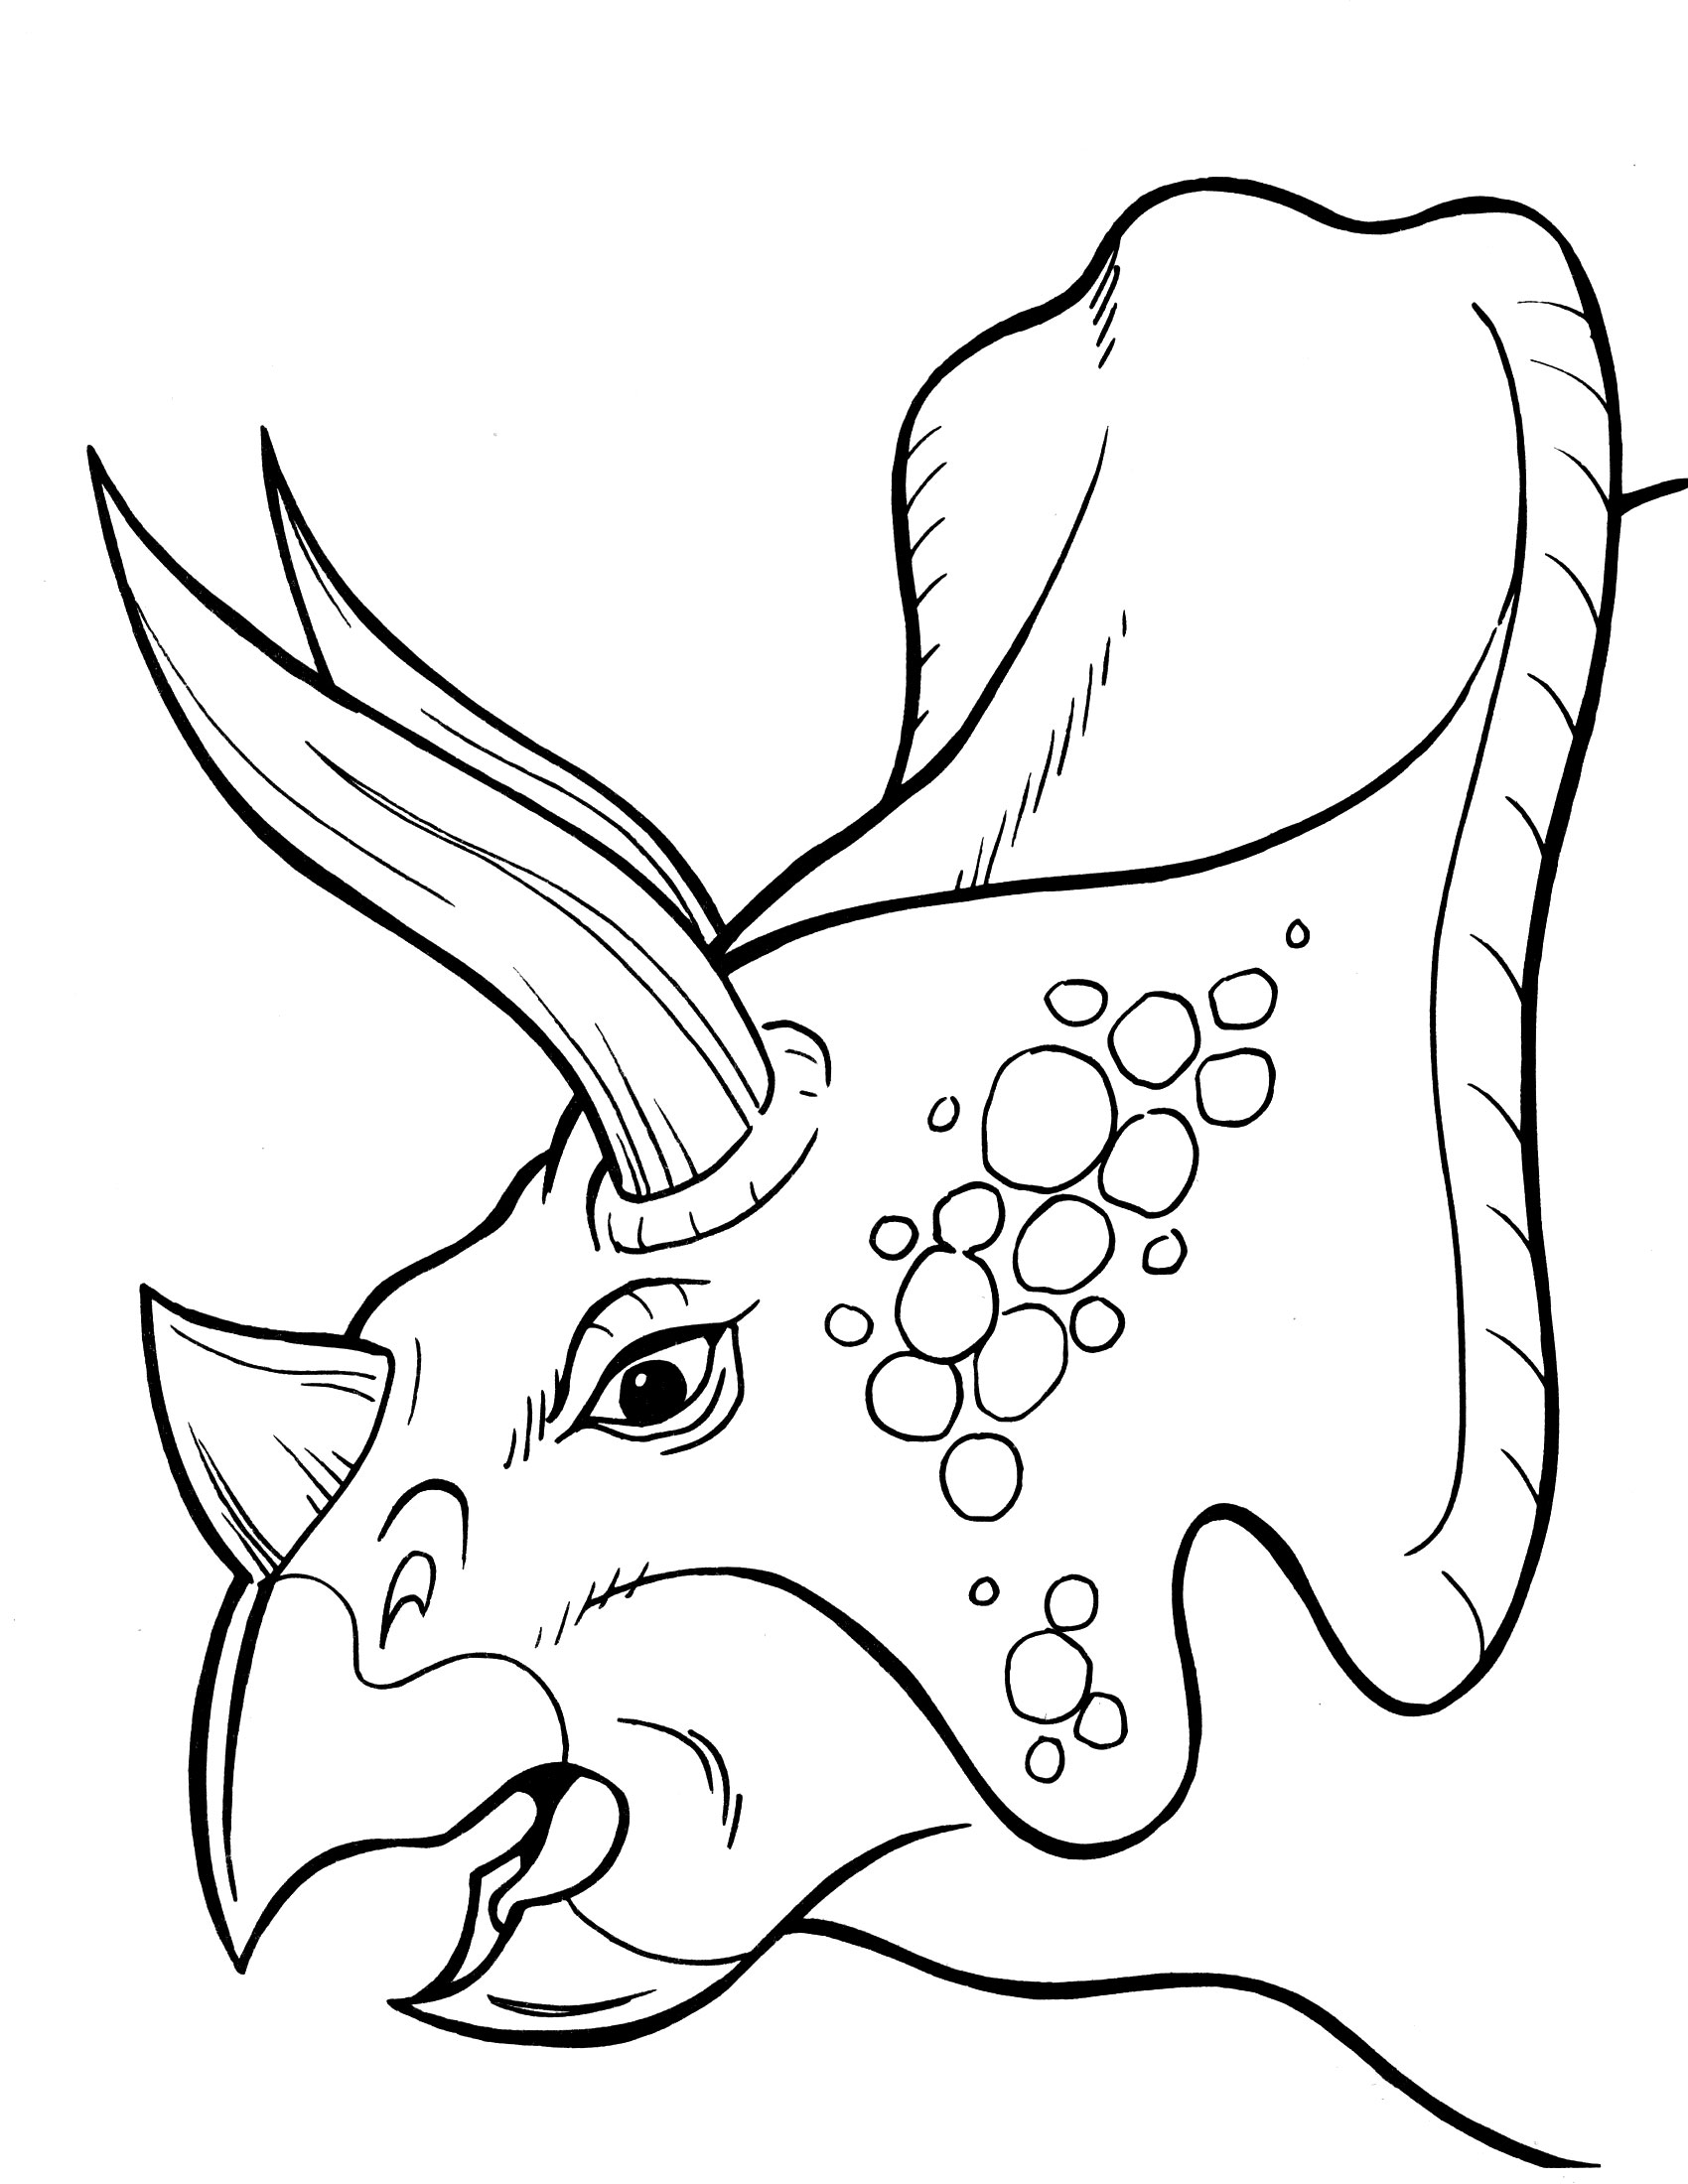 Dinosaur Say Goodnight Coloring Page Coloring Pages